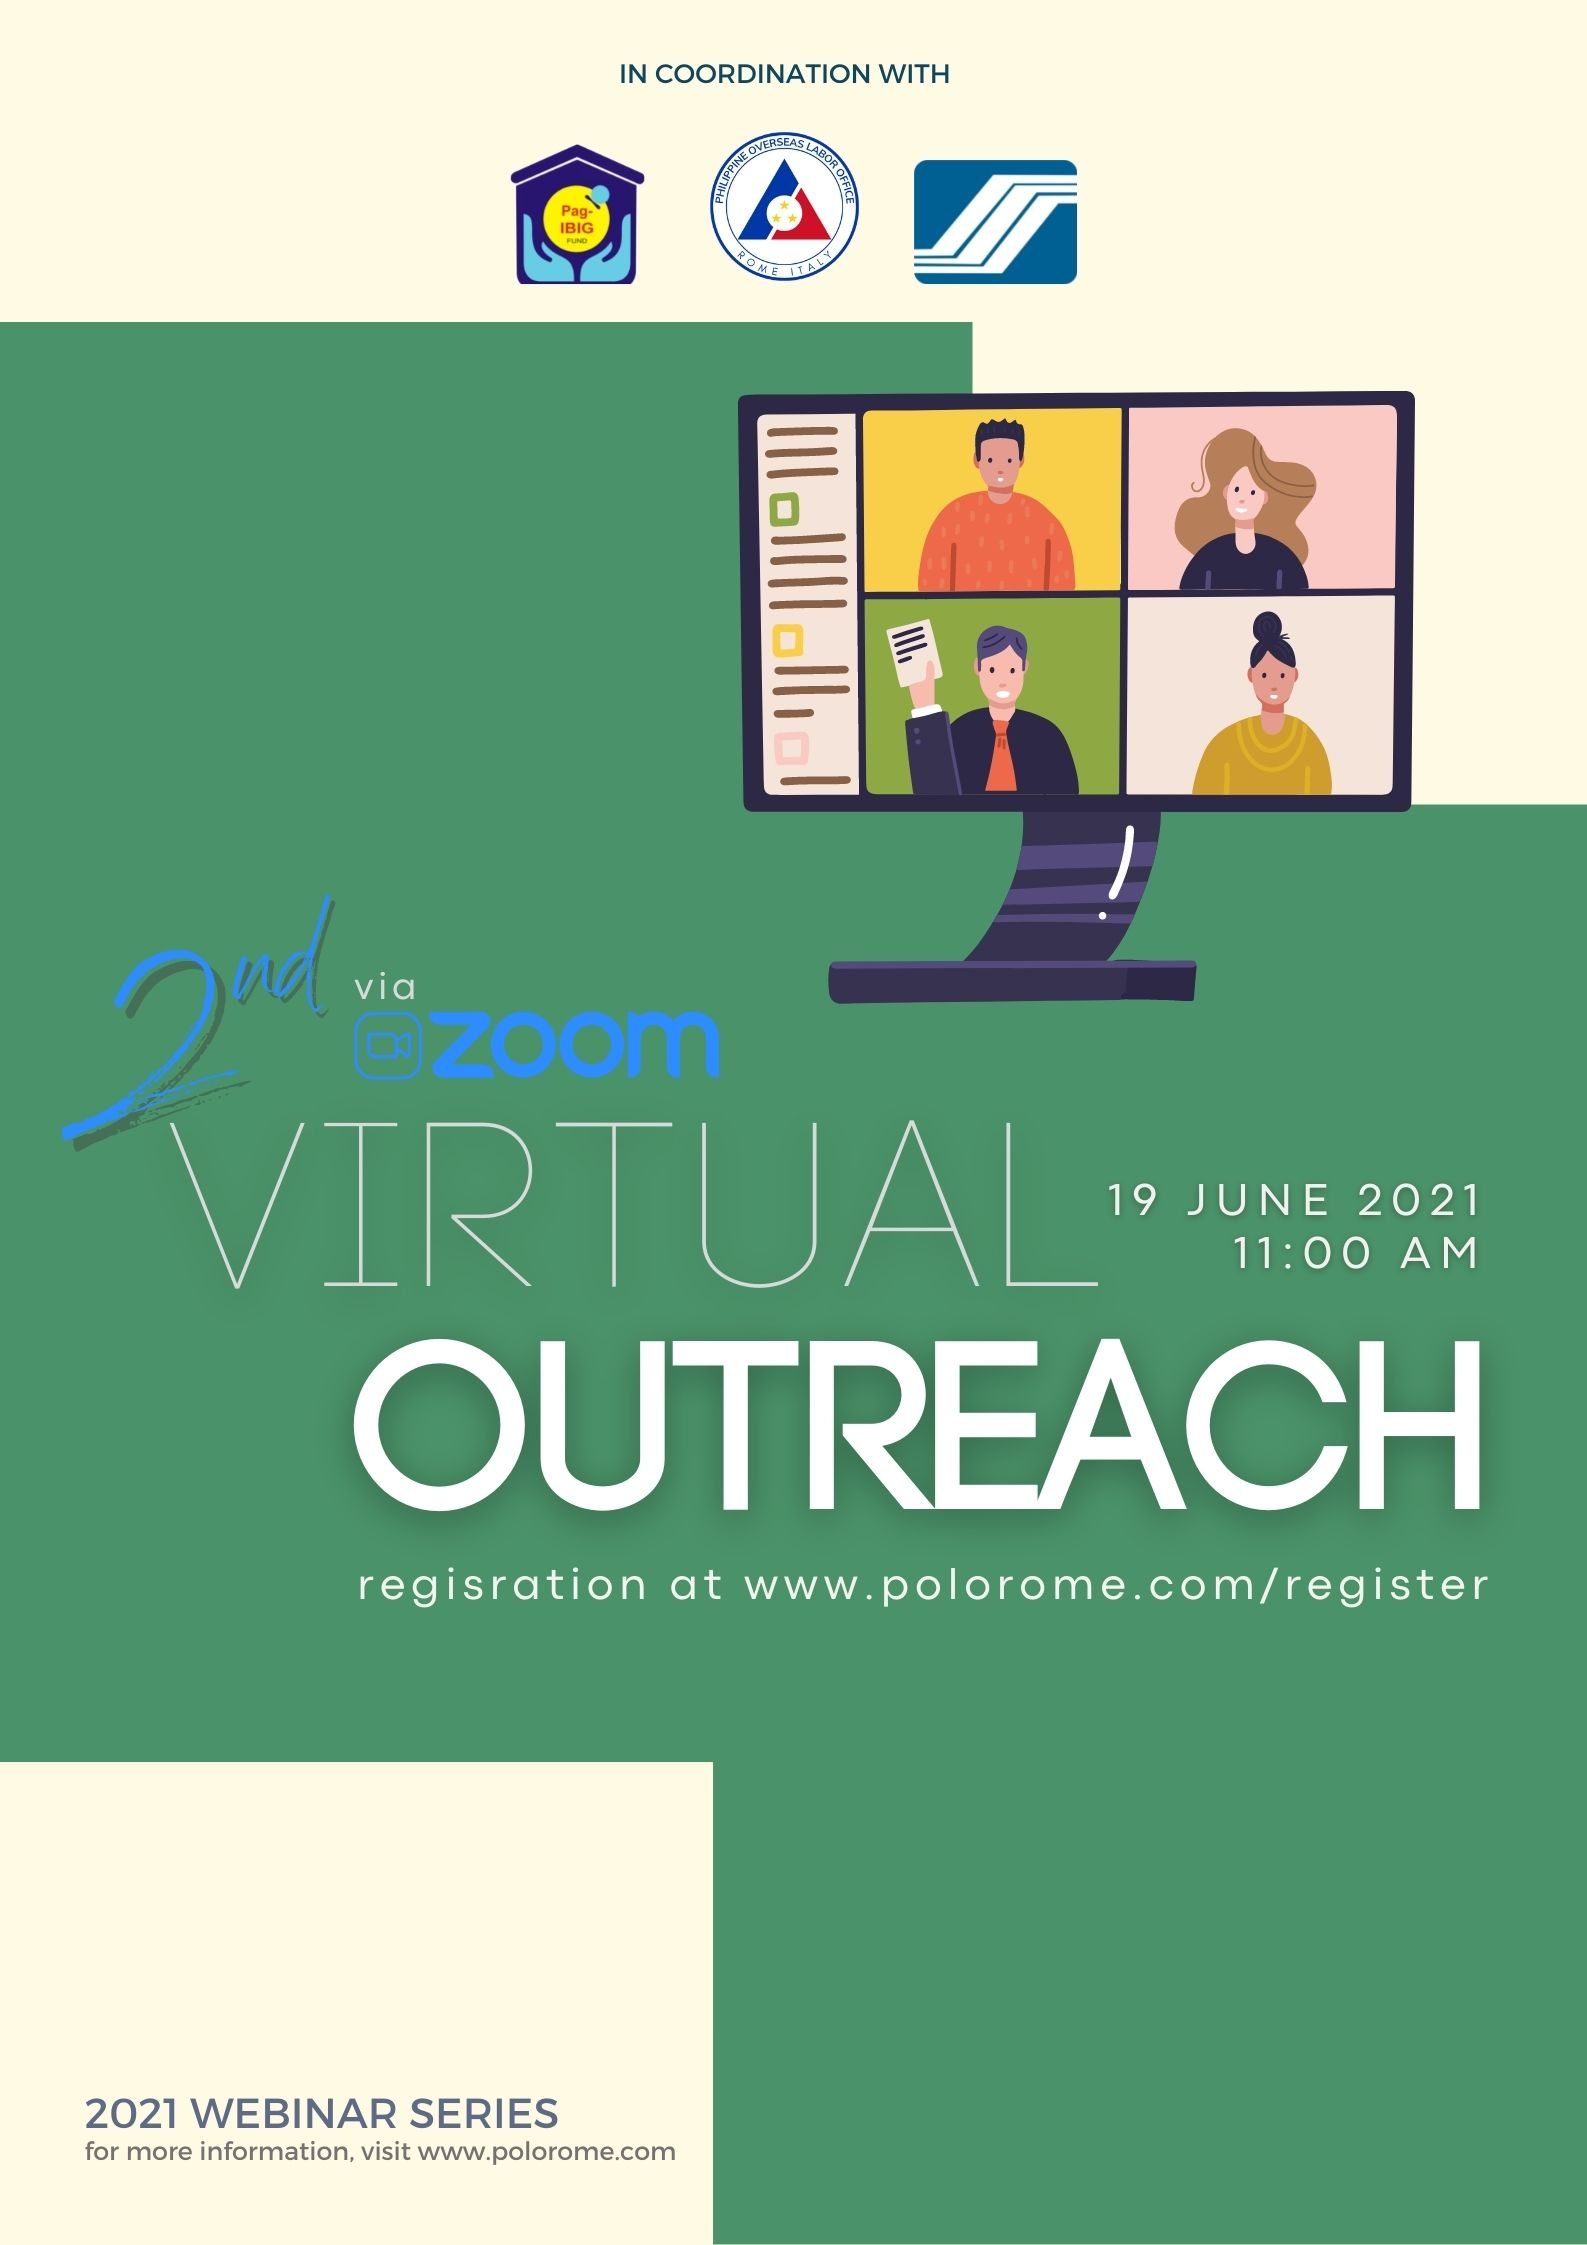 Webinar Series – 2nd Virtual Outreach with POLO, SSS and Pag-IBIG